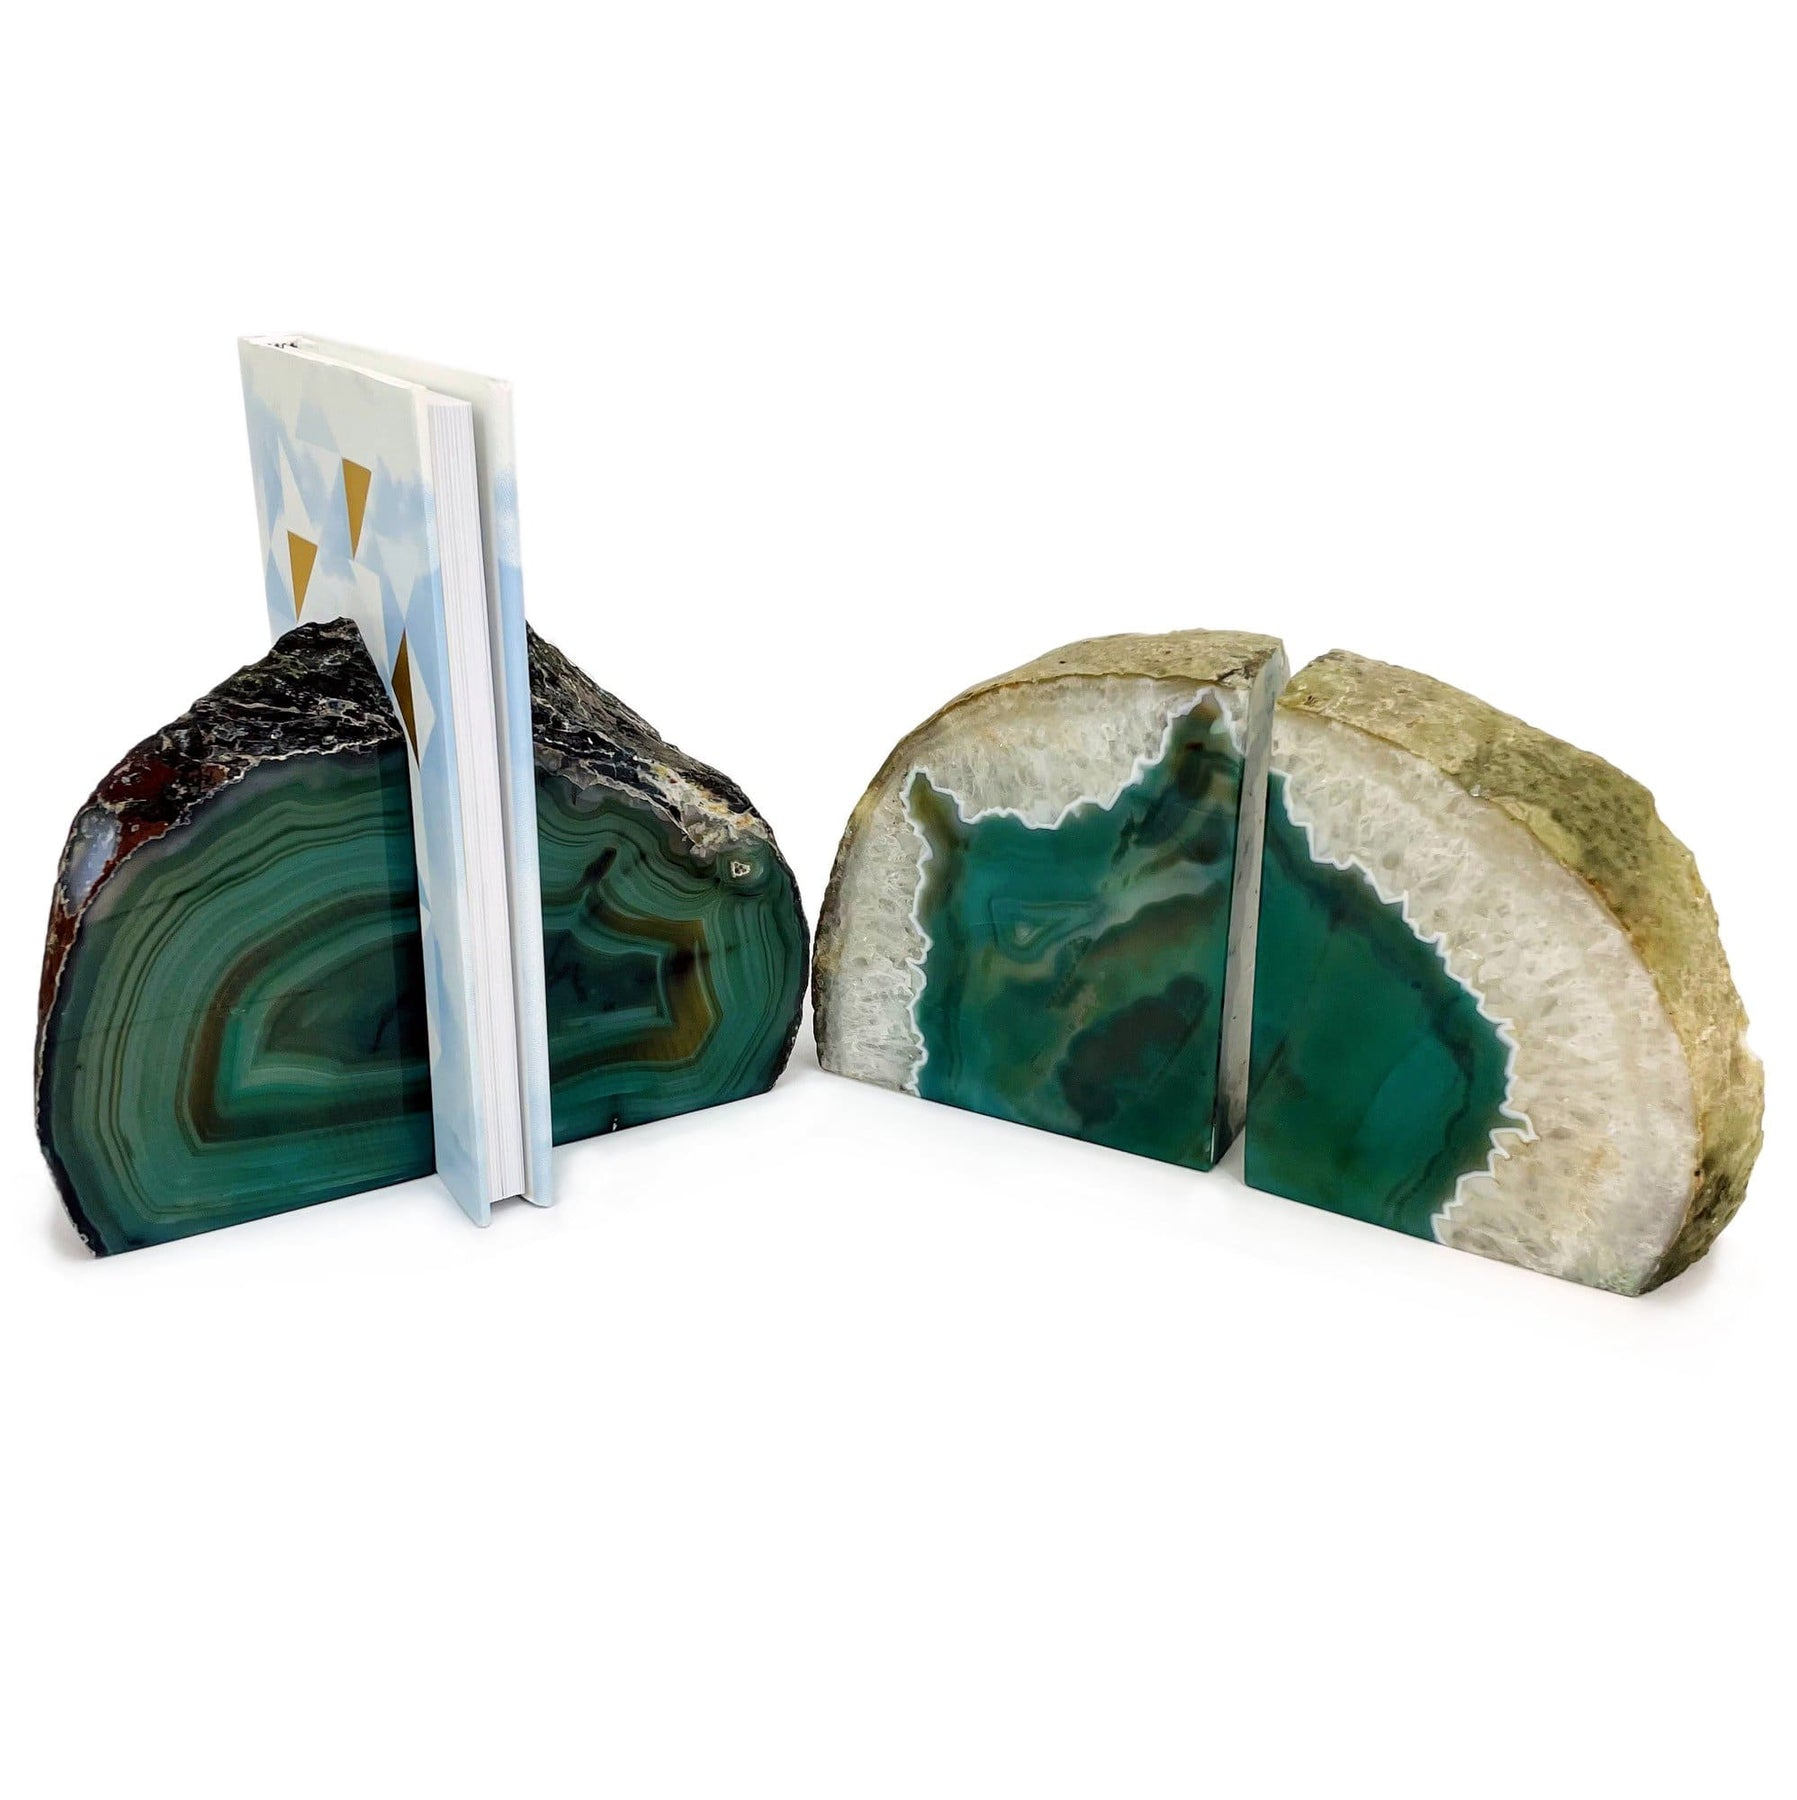 by Joyoung: 2-3 LBS//Set 1 Pair Rough//Polished Green Agate Bookend s